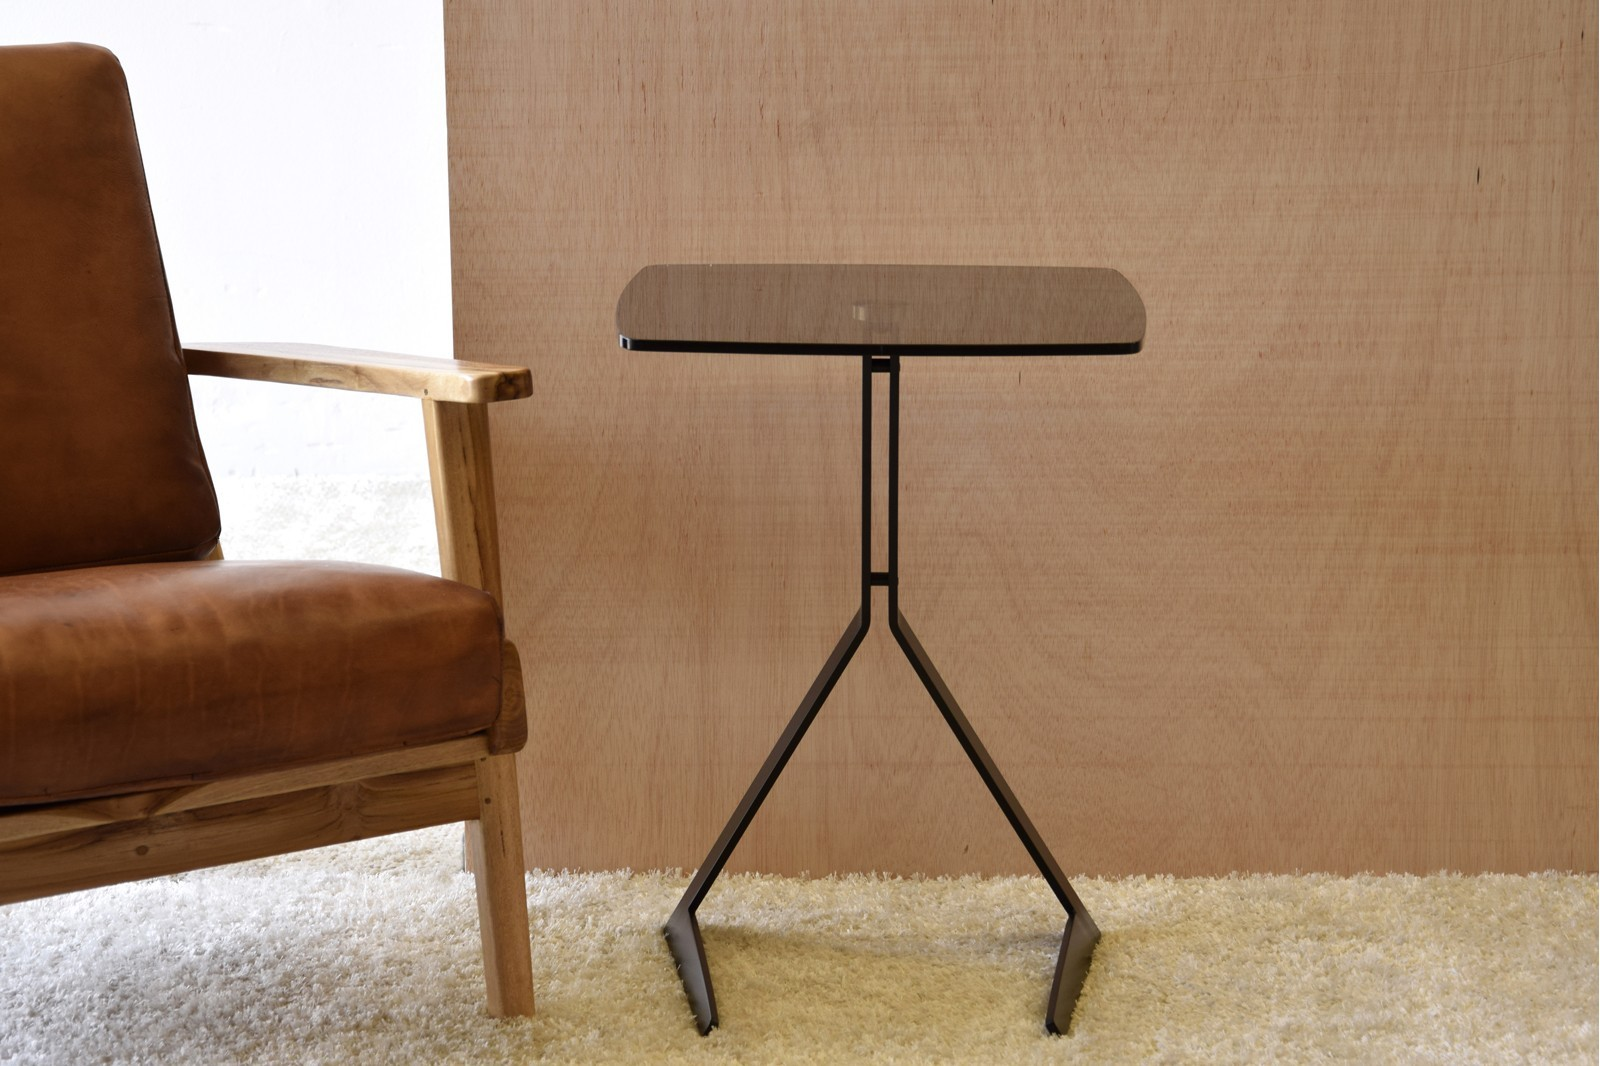 SIDE TABLE GLASS TOP AND BLACK METAL